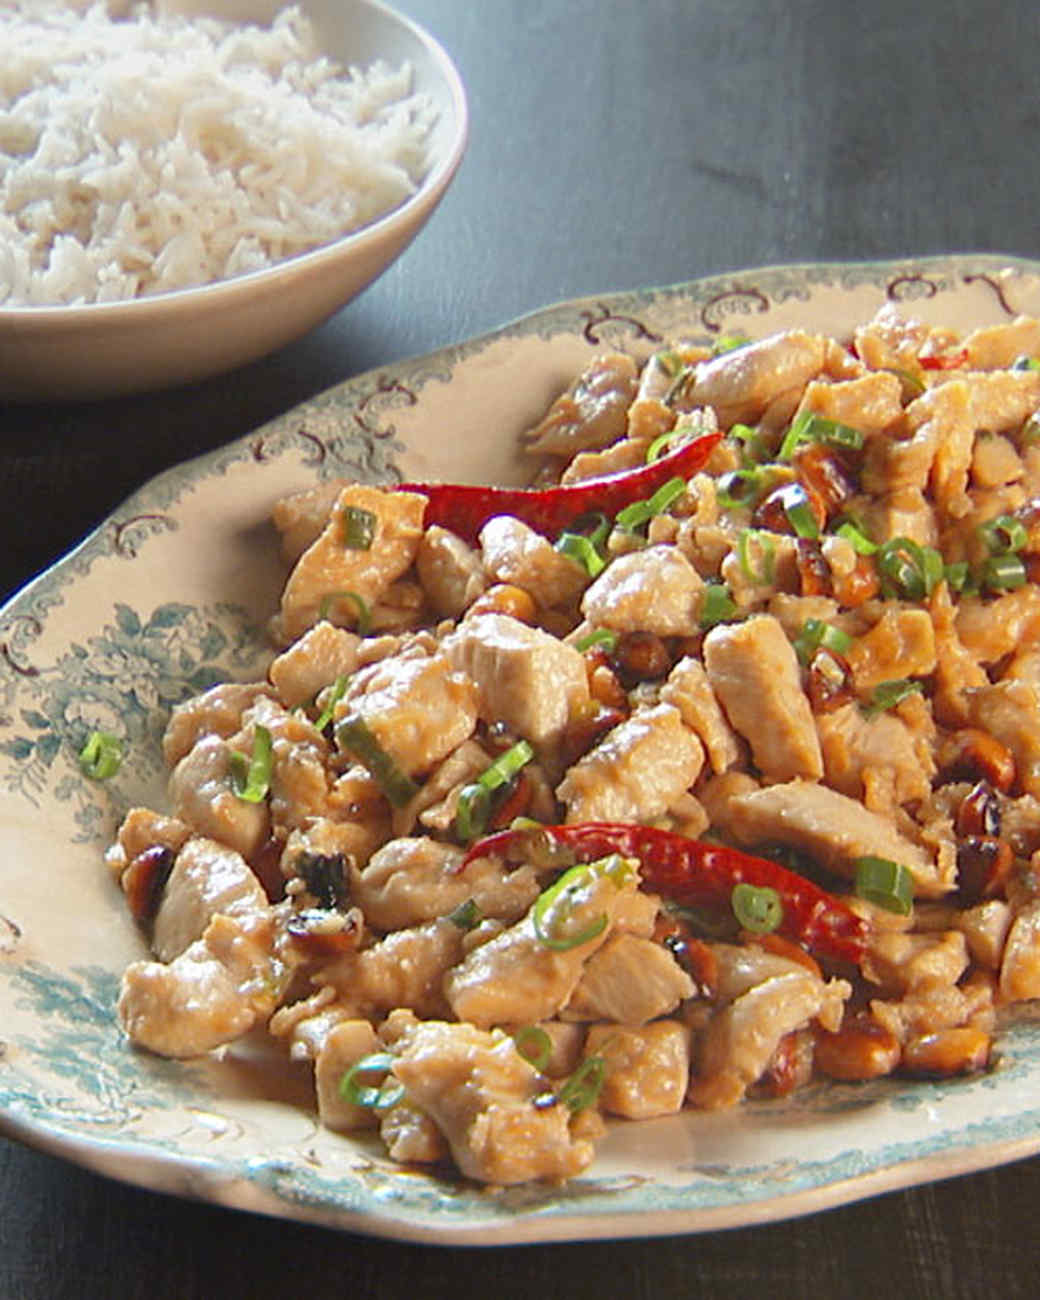 mh_1033_stir_fried_chicken.jpg